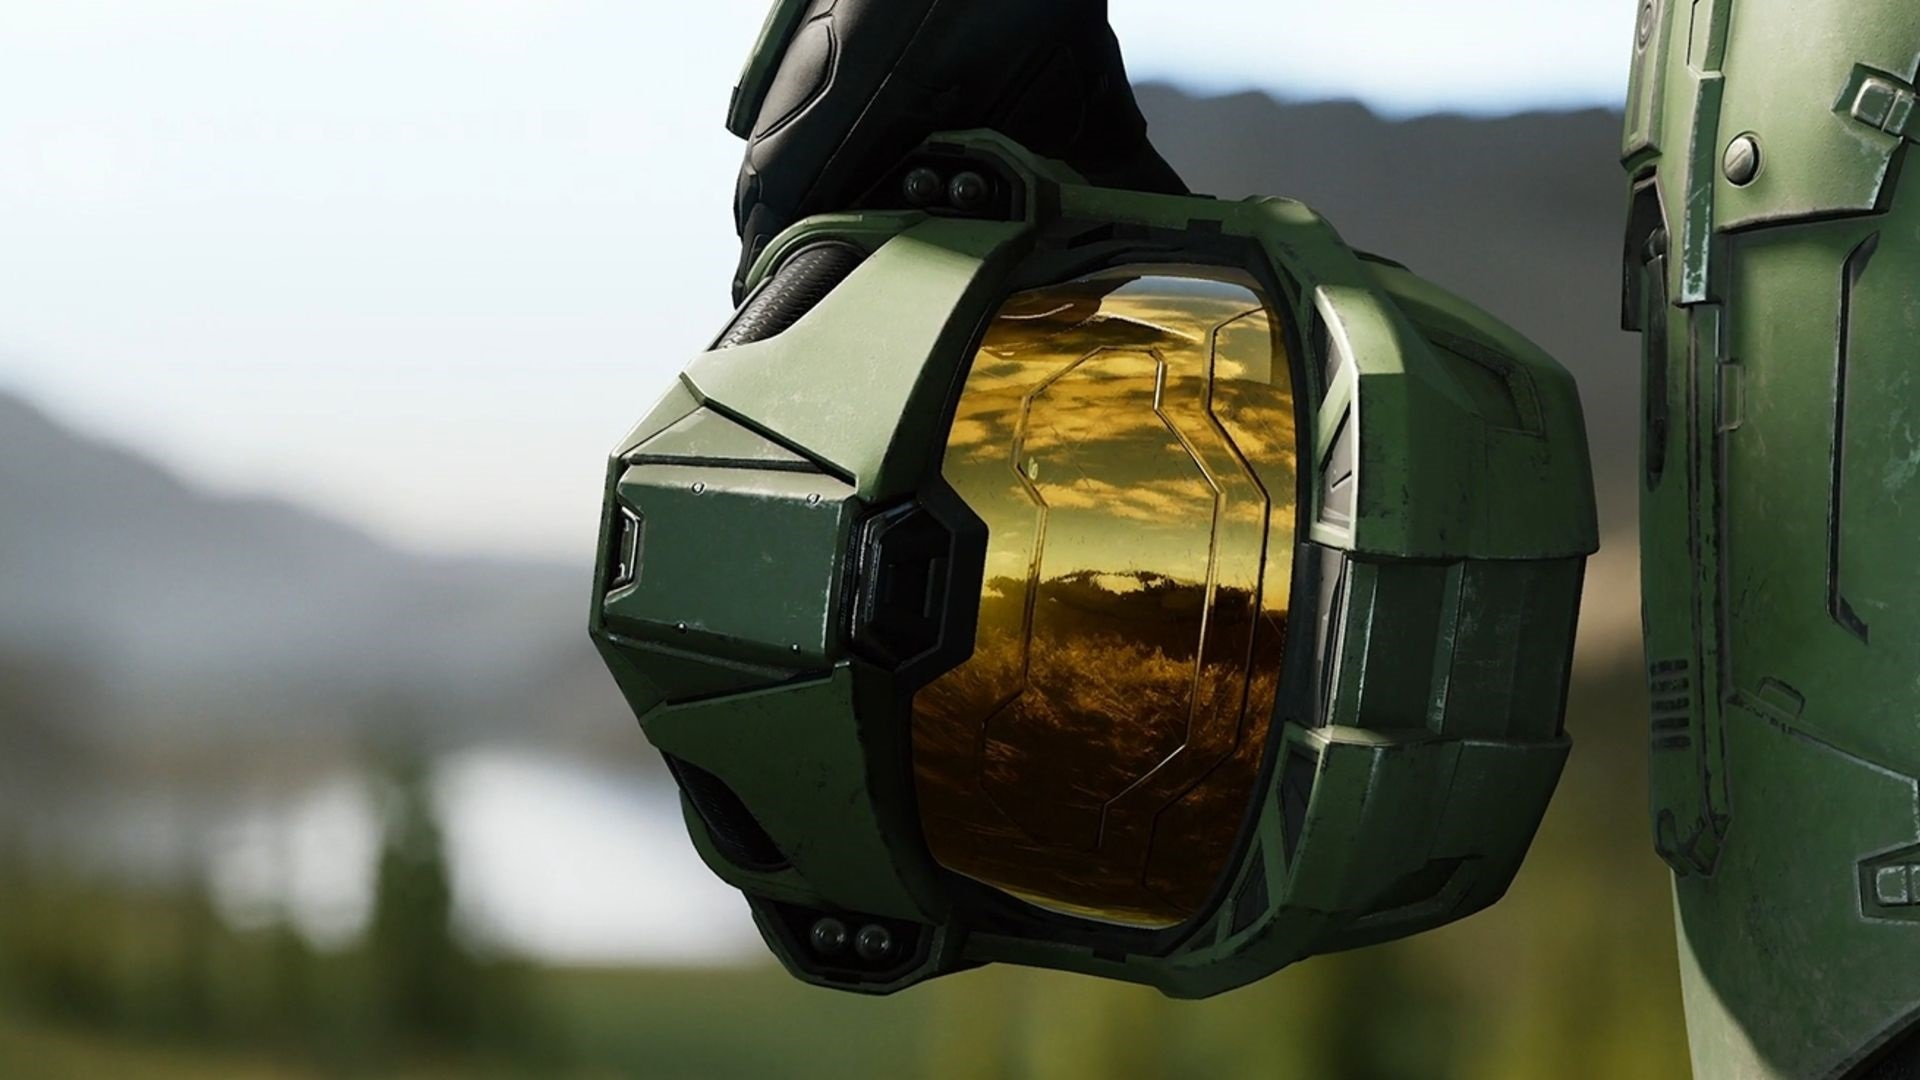 Xbox Scarlett is seemingly a family of two different consoles